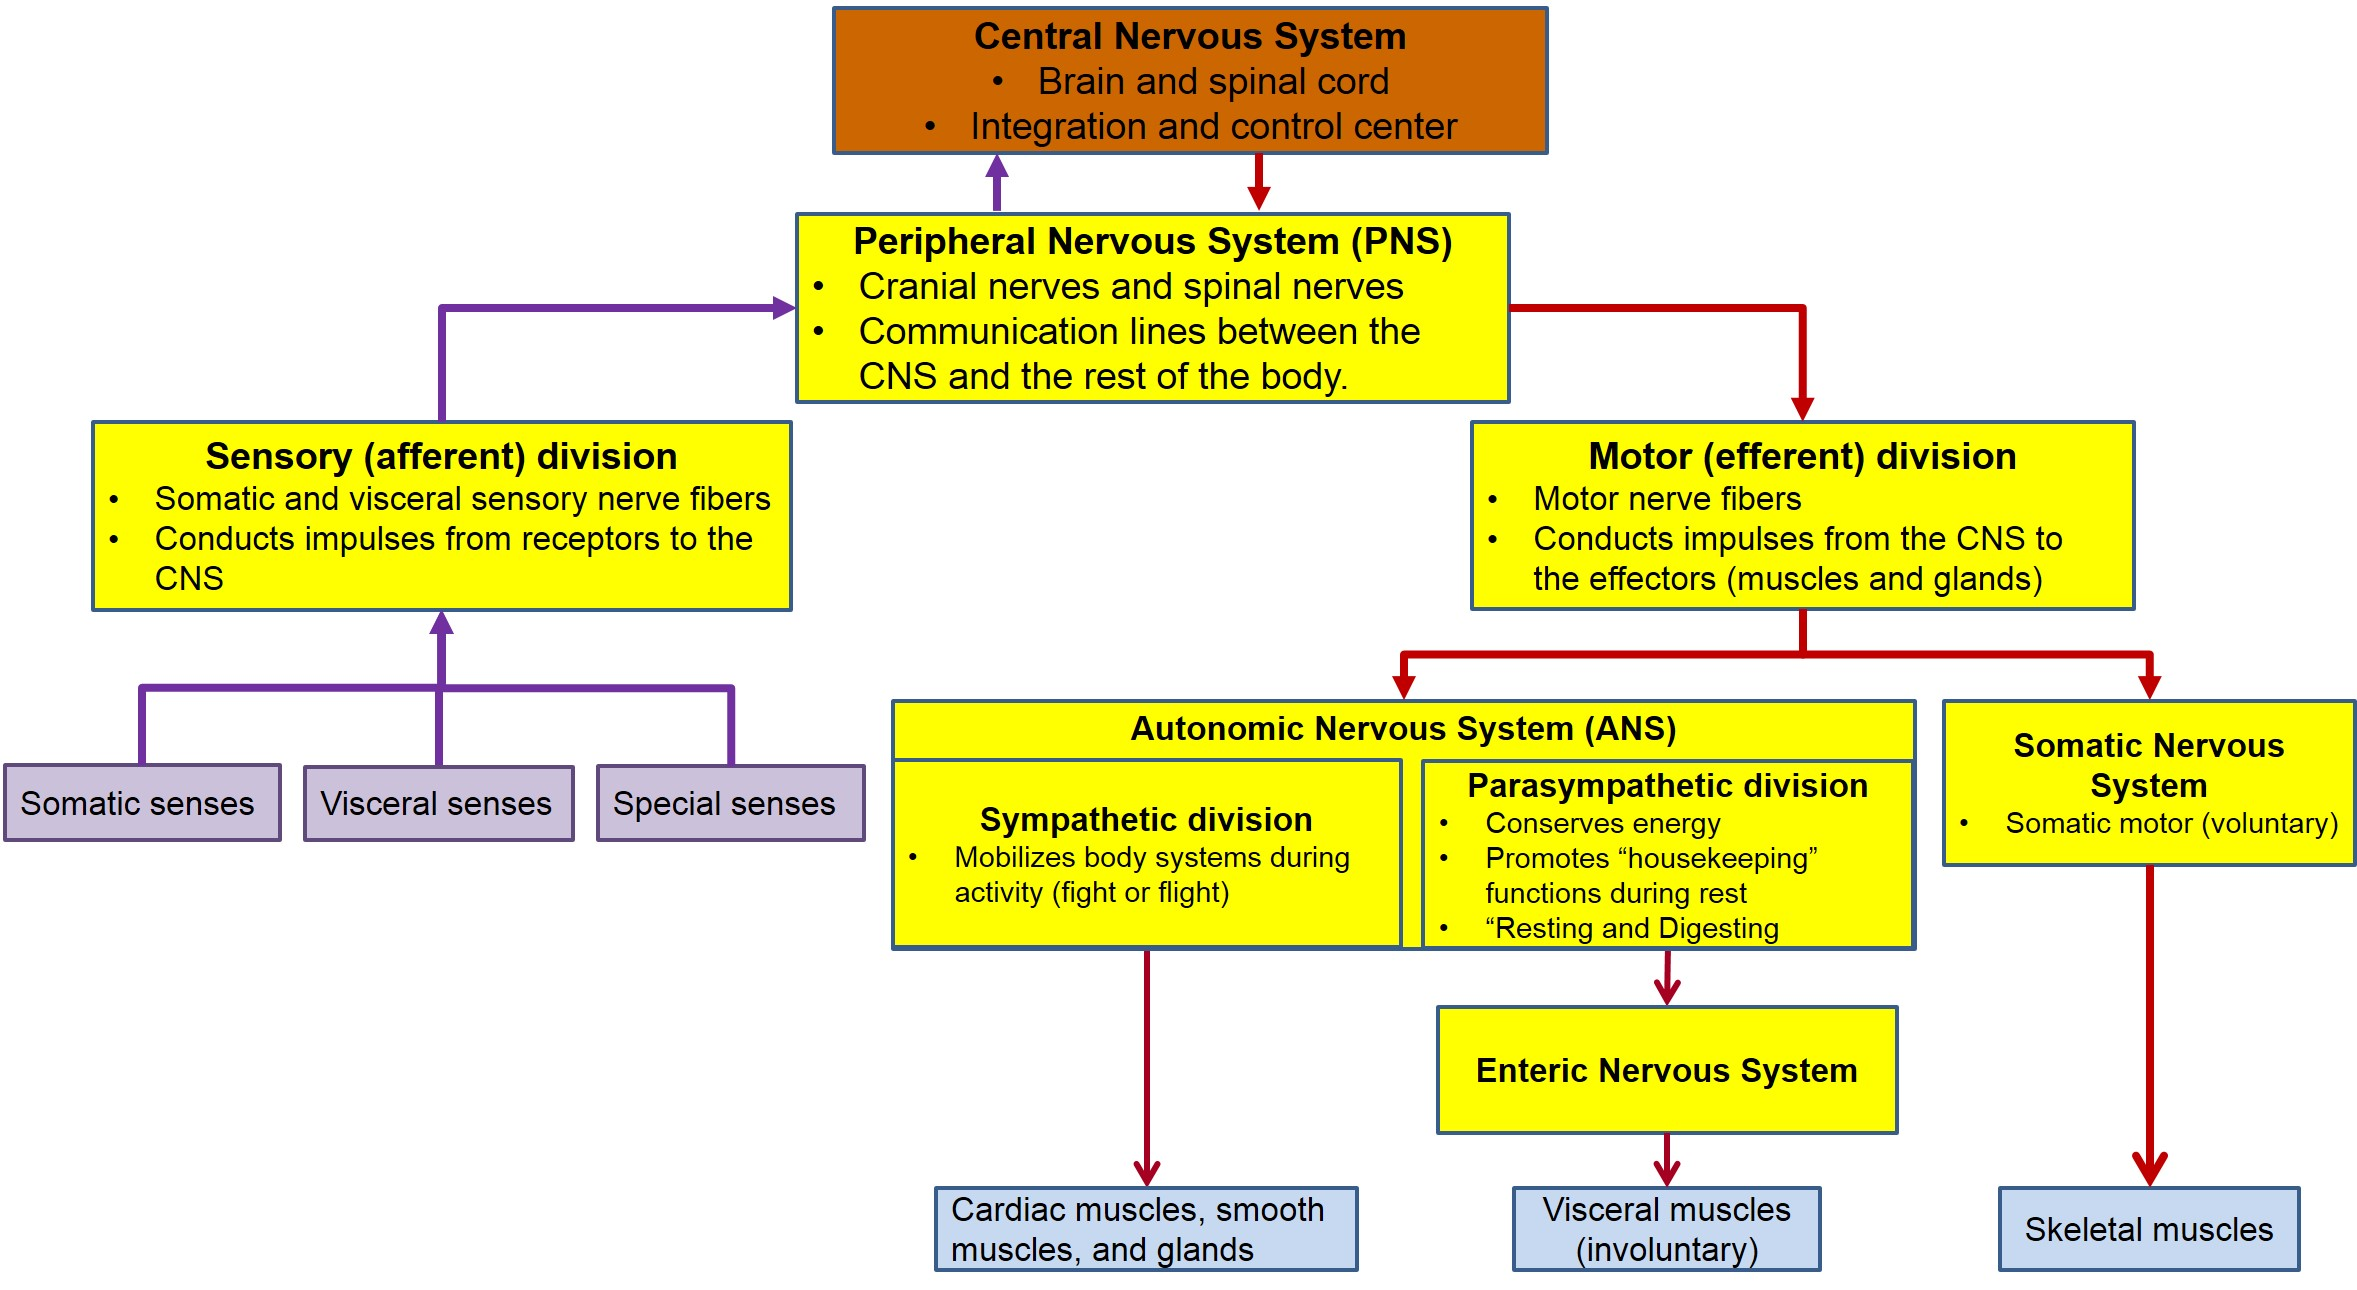 Motor Division Of The Peripheral Nervous System